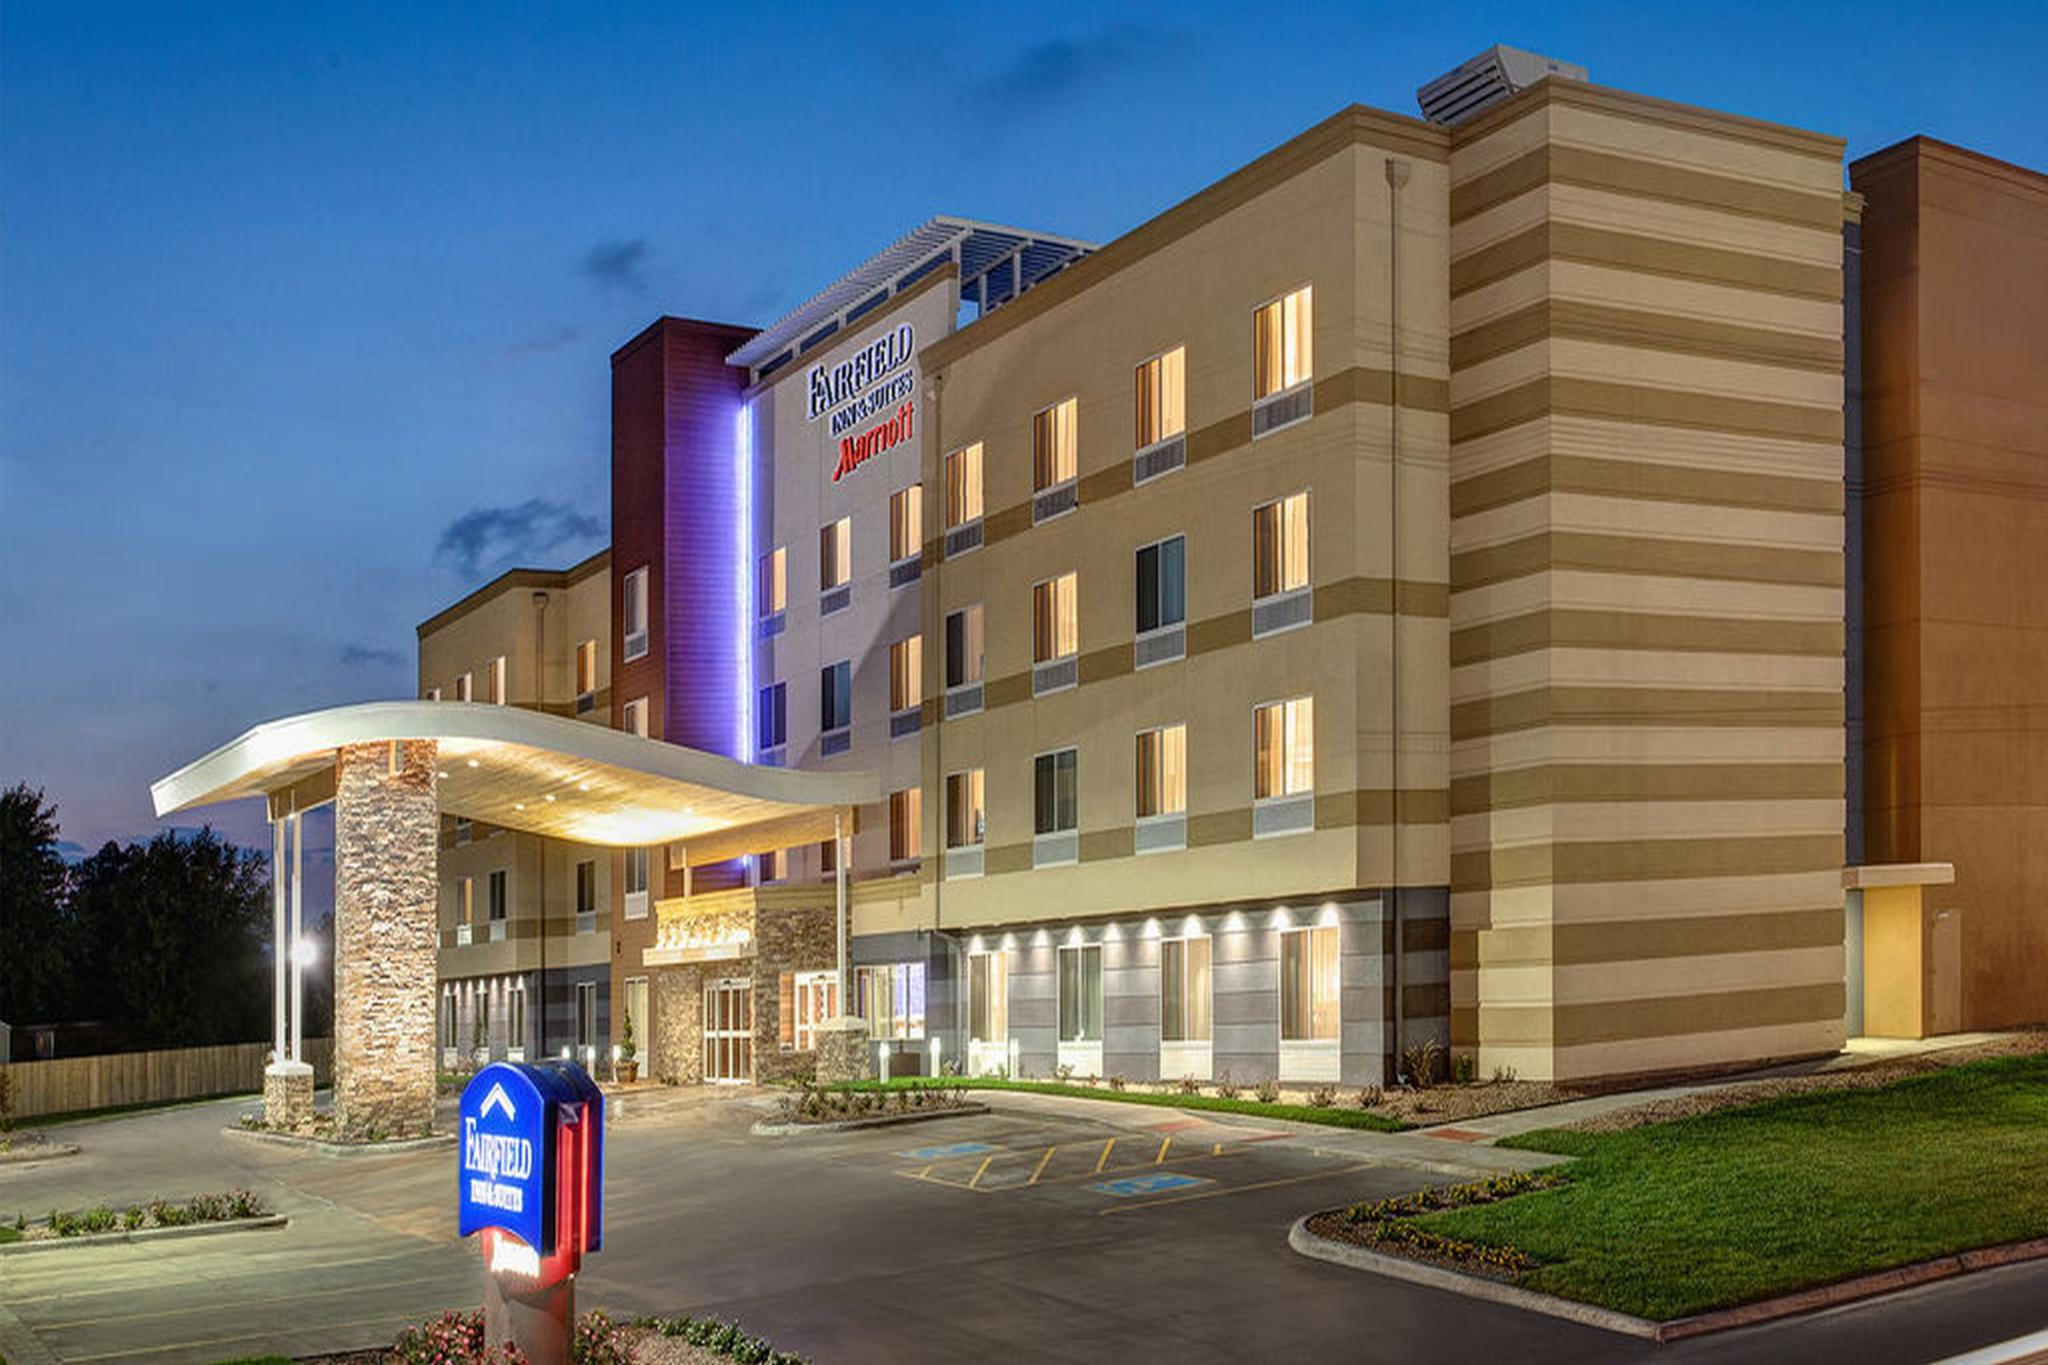 Fairfield Inn & Suites Dallas Waxahachie